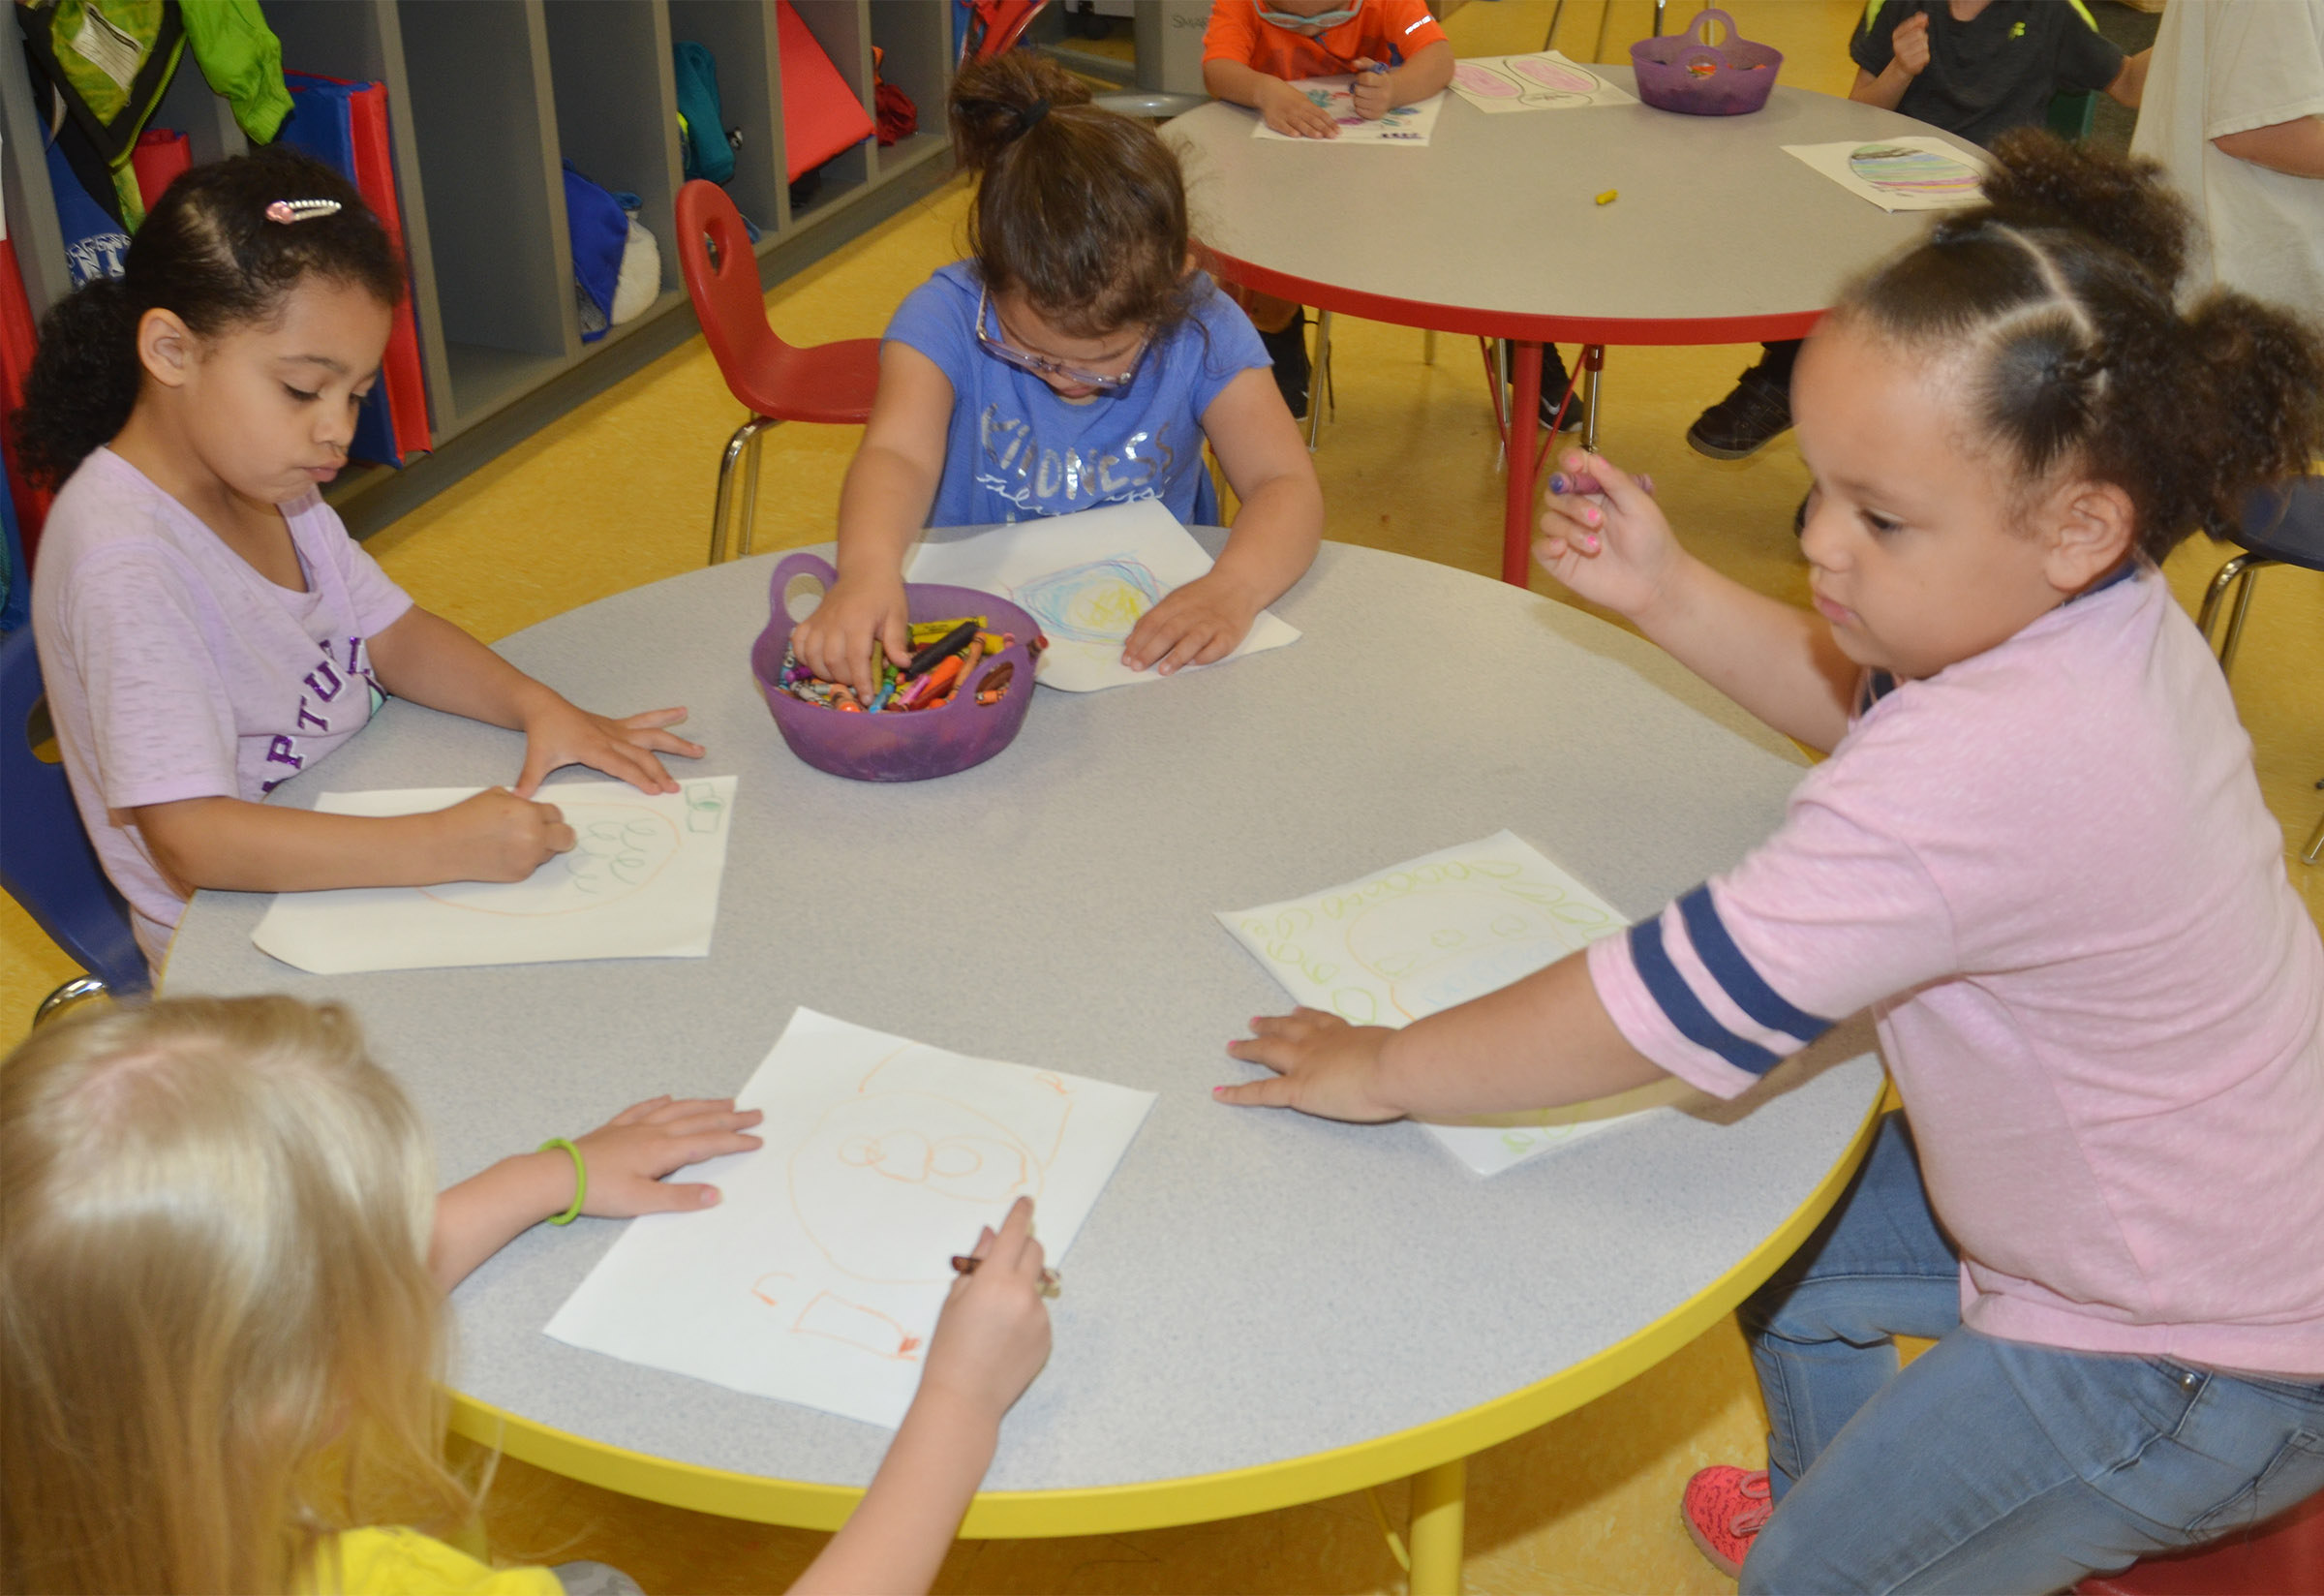 From left, CES preschool students Alinna Bray, Rylee Karr, Addisyn Taylor and Lillian Merriweather draw Easter eggs.